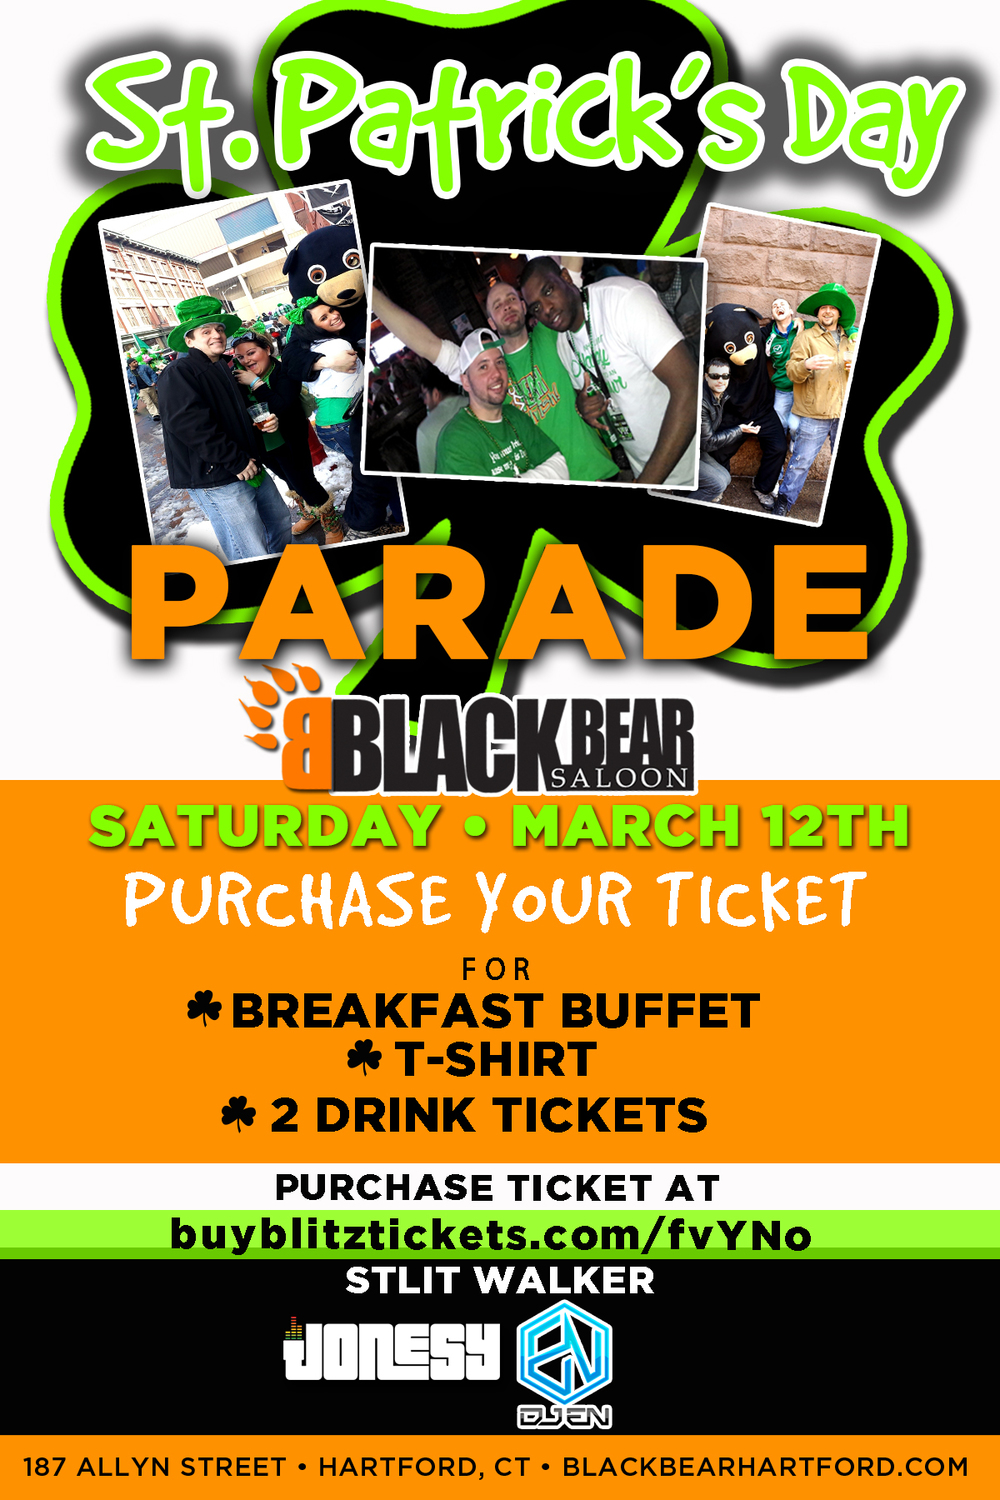 Saturday, March 12th join us at Black Bear in Hartford, CT for a full day of St. Paddy's Day Celebrations!  Purchase your tickets at buyblitztickets.com/fvYNo for a Breakfast Buffet, T-Shirt & 2 Free Drink Tickets!  Music by yours truly starts early in the morning with DJ EN to follow.  Meet us there!